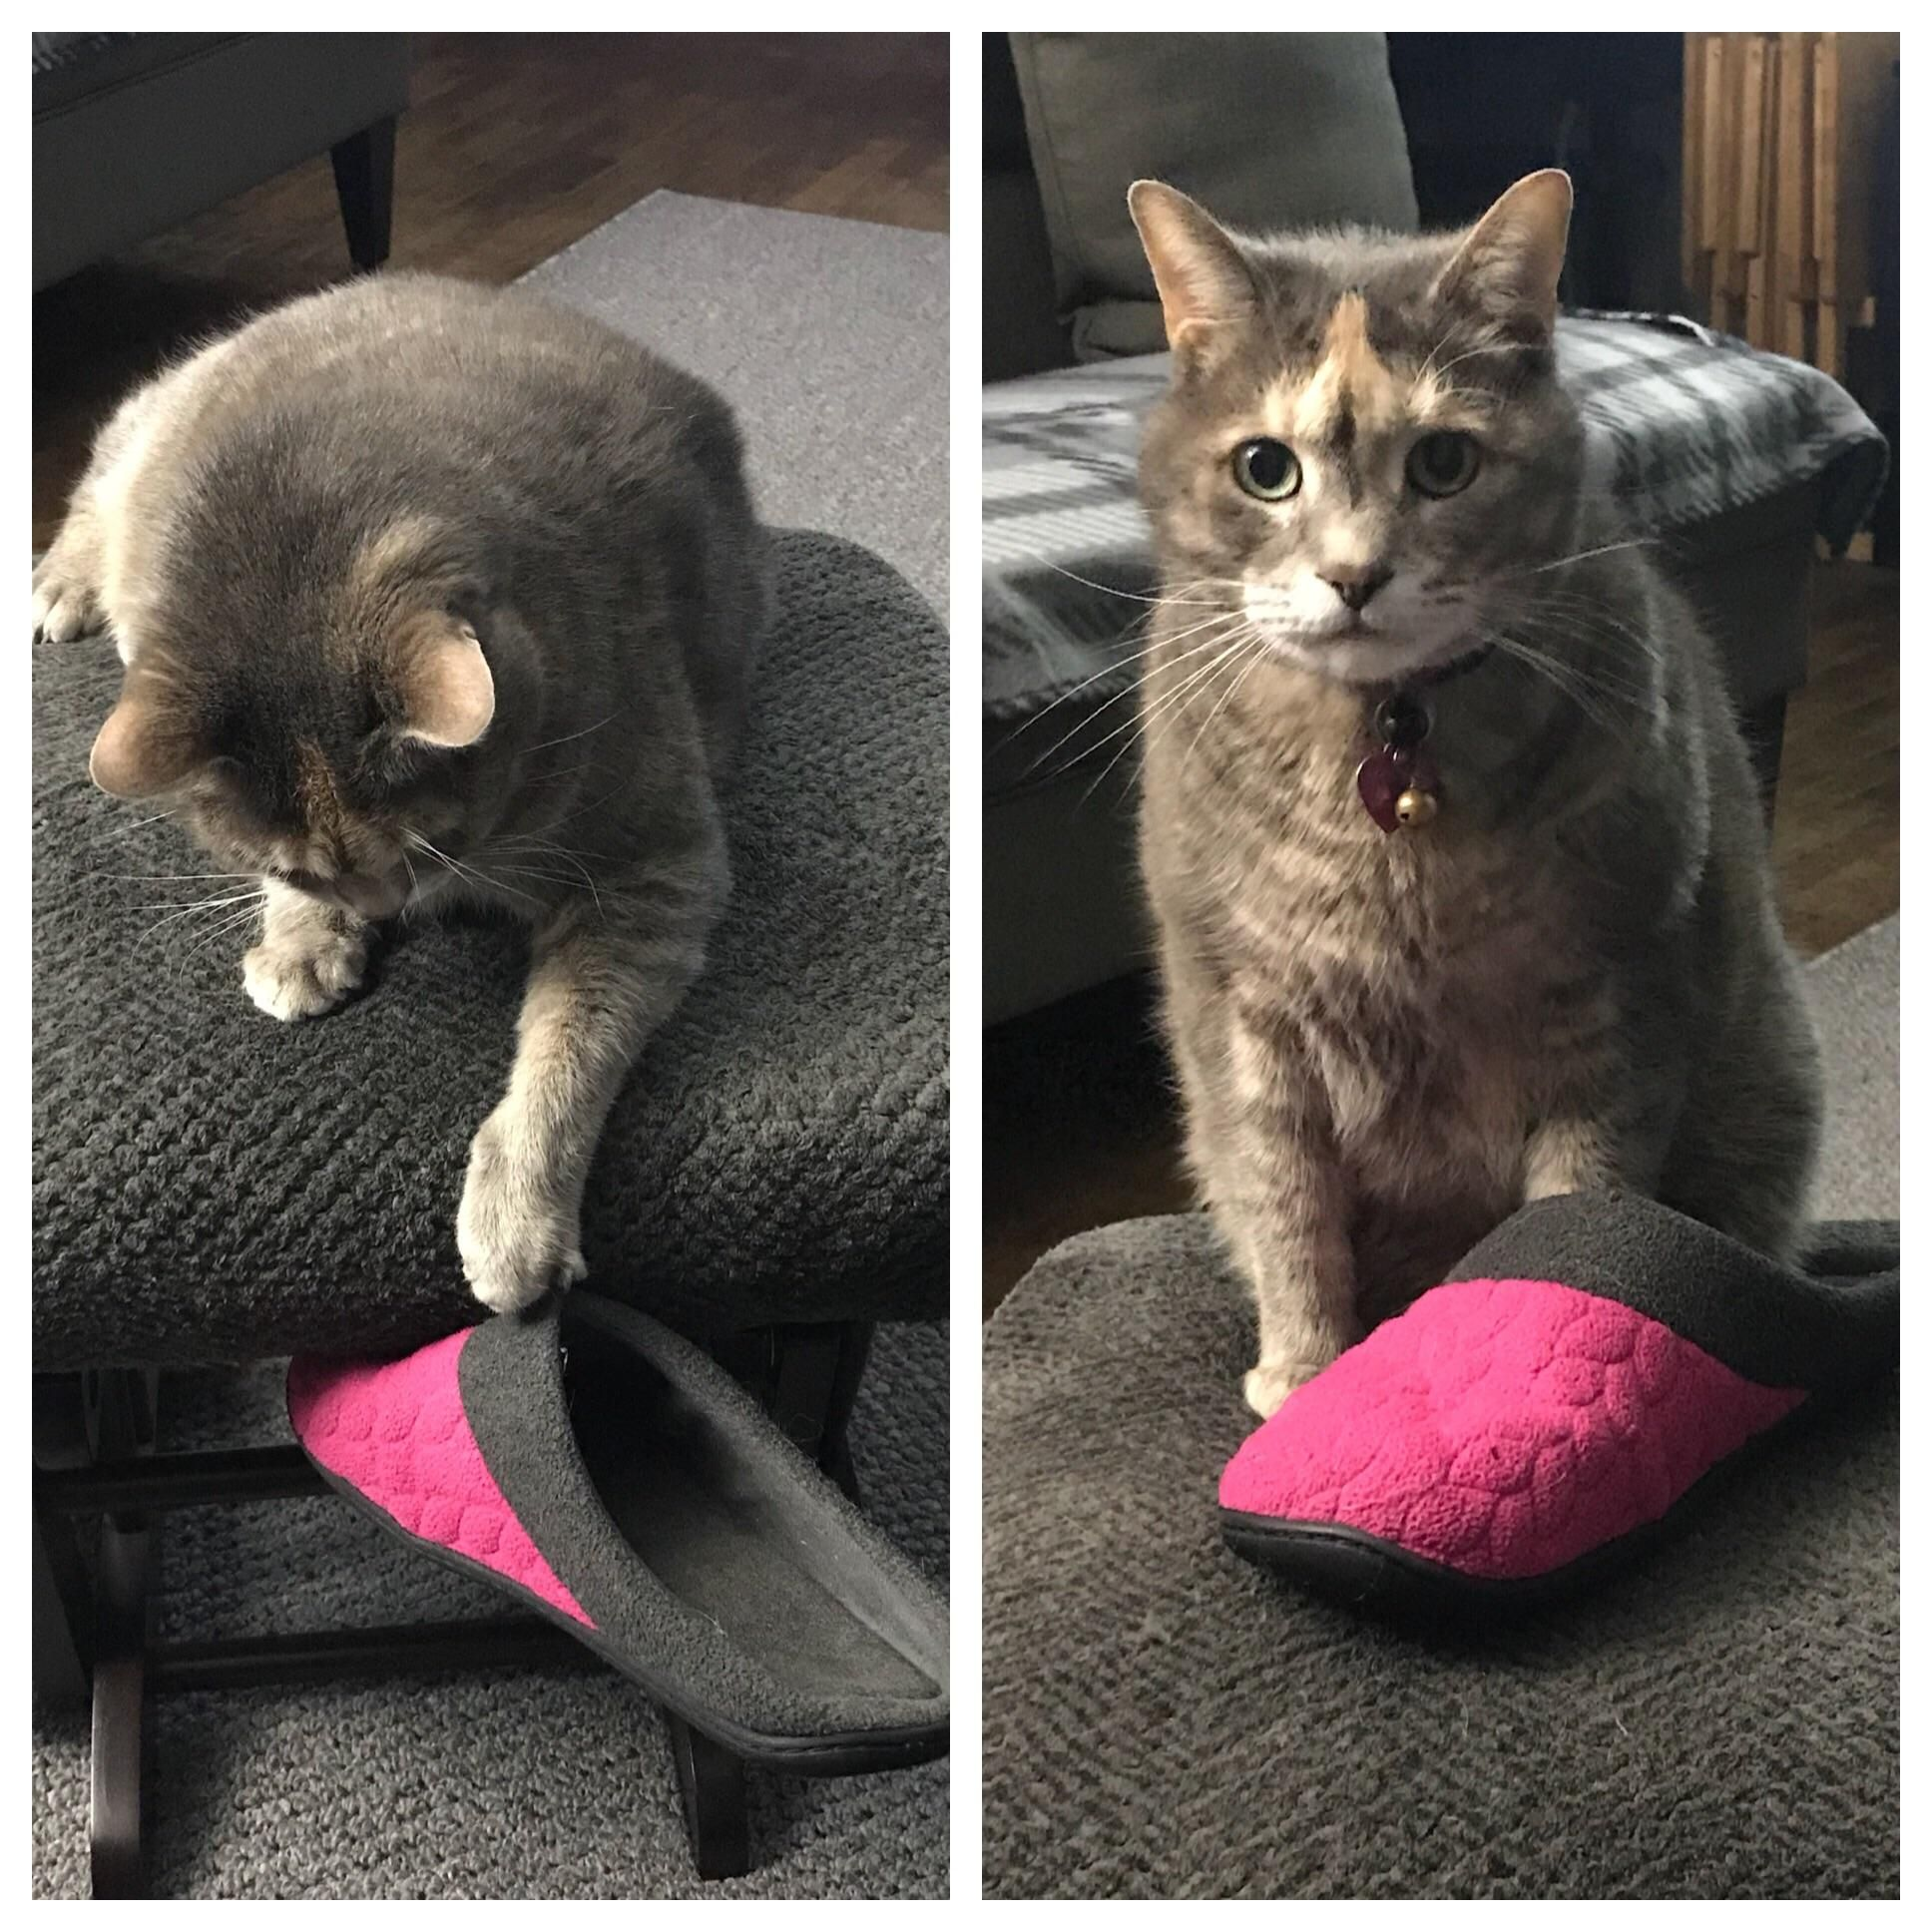 She stole my slipper. Then dared me to try and get it back.